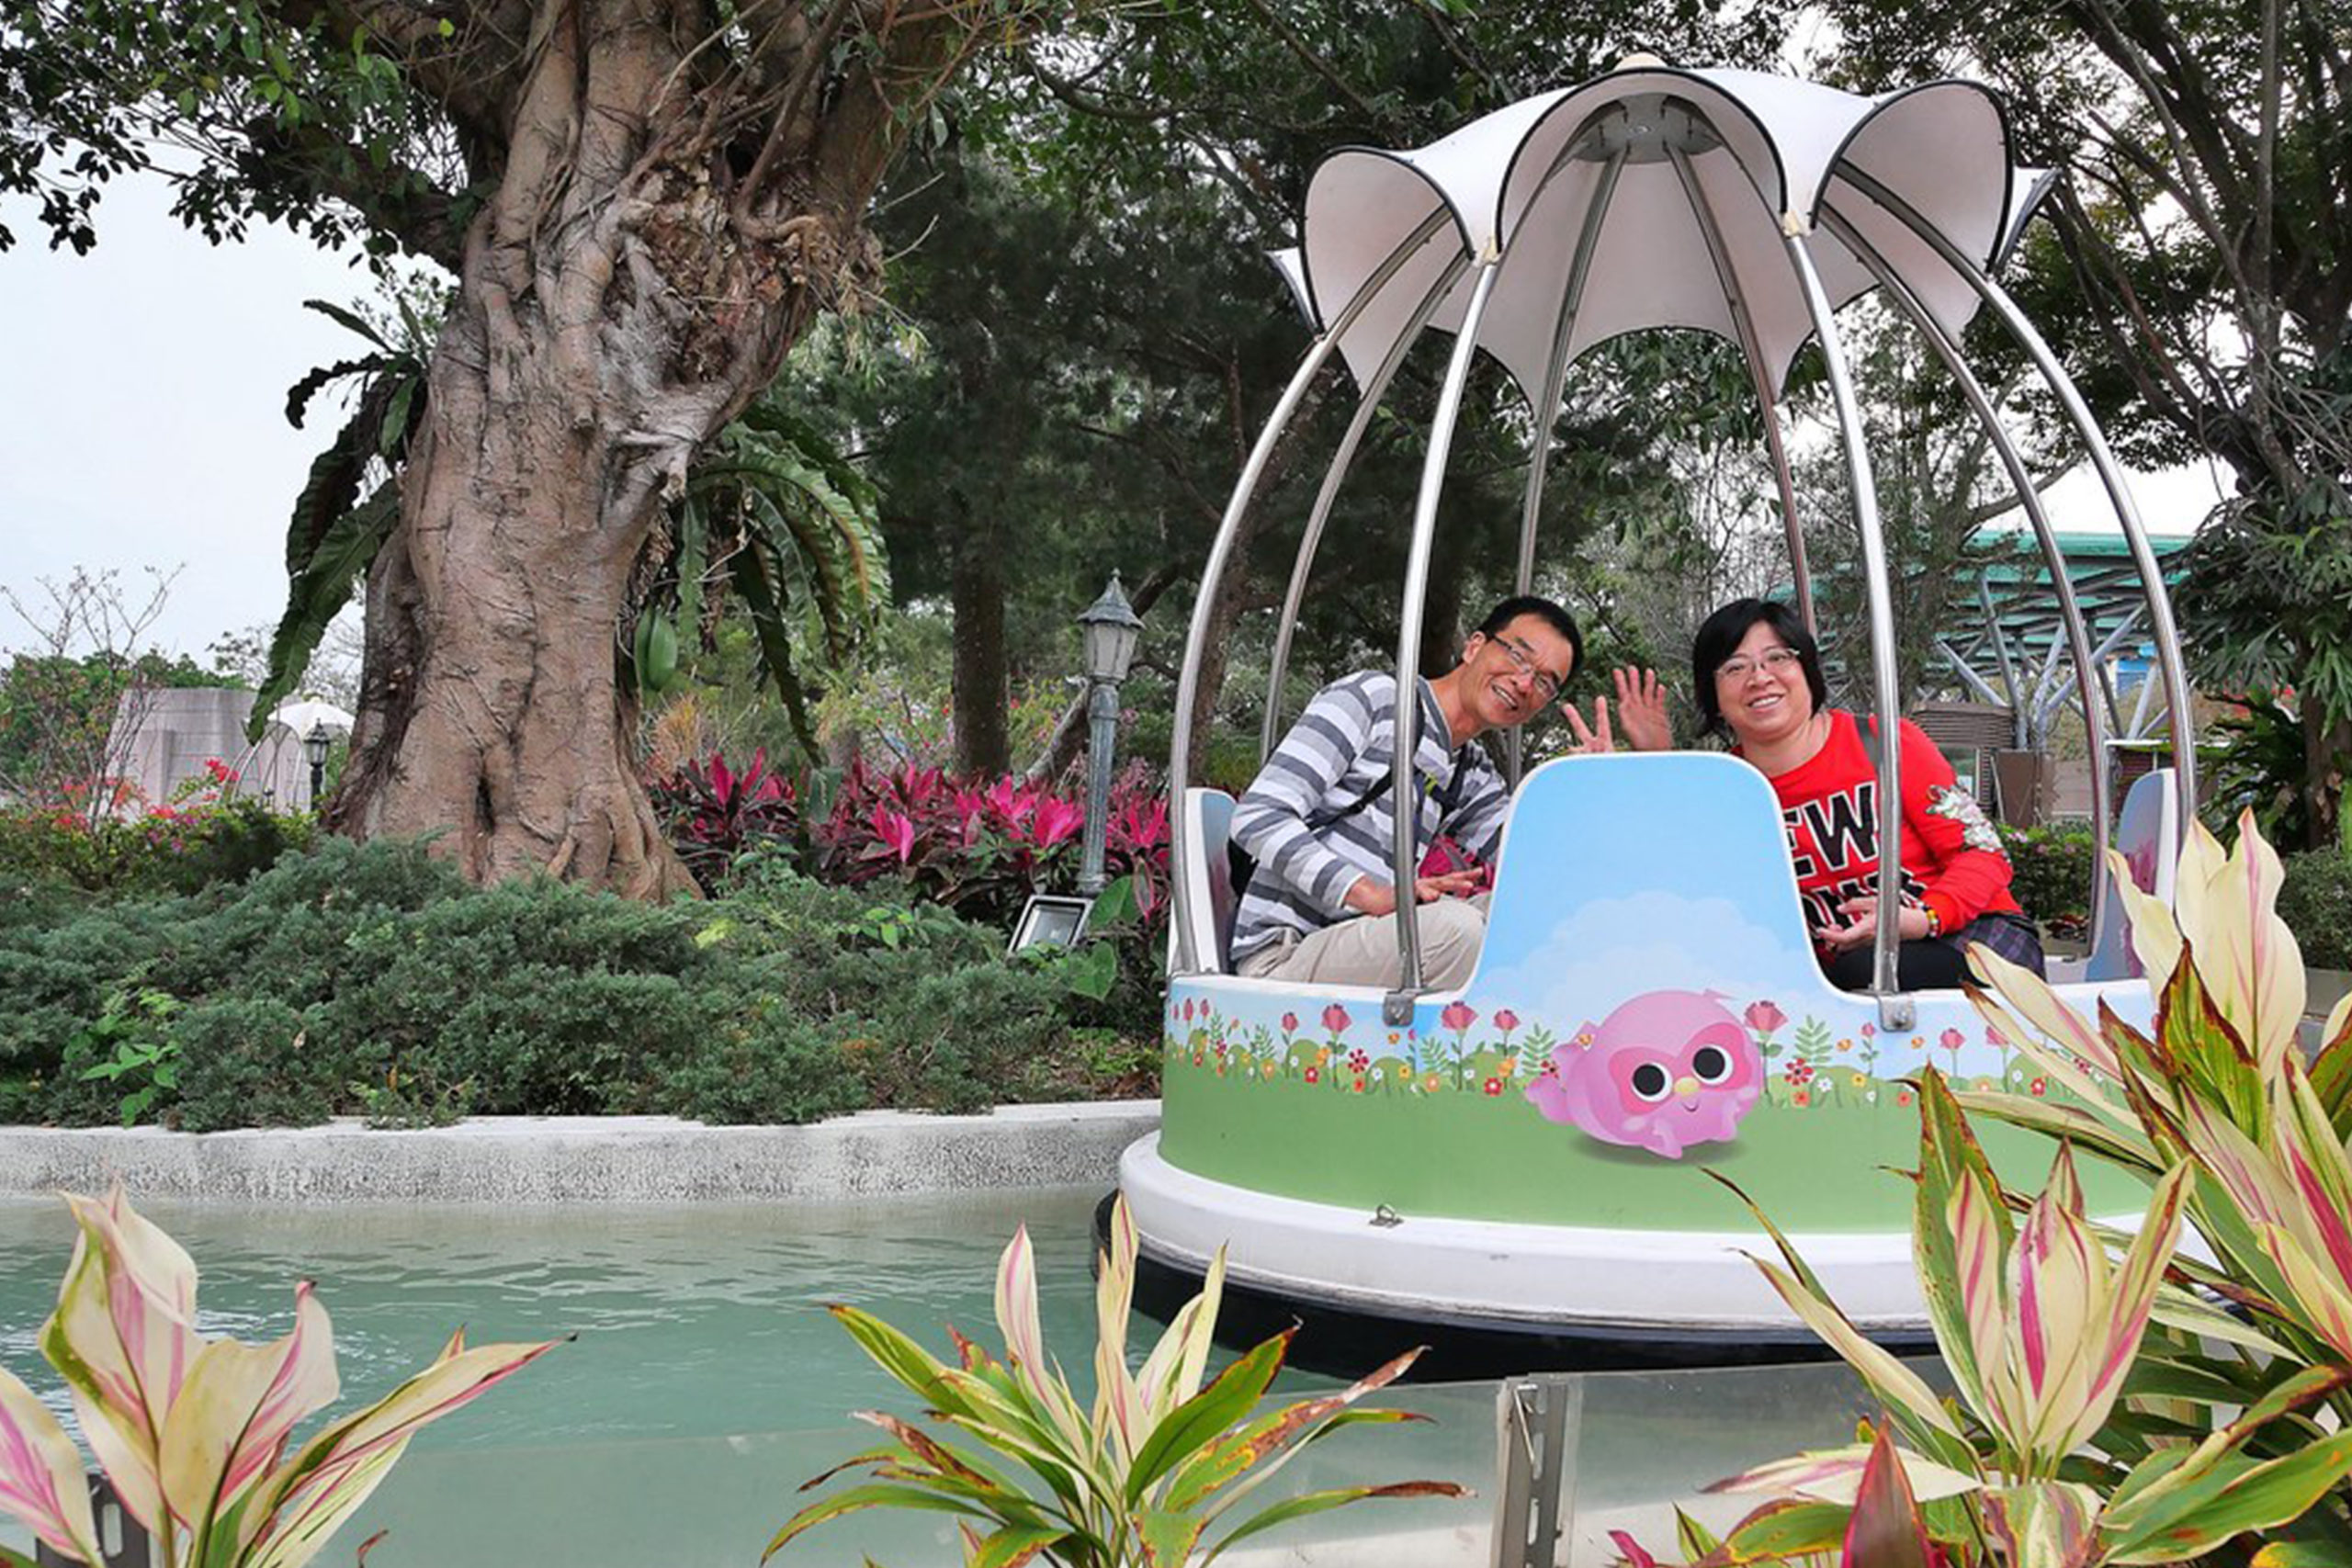 Interlink New Ride : Spin Boat Garden Boats at Lihpao Land 6